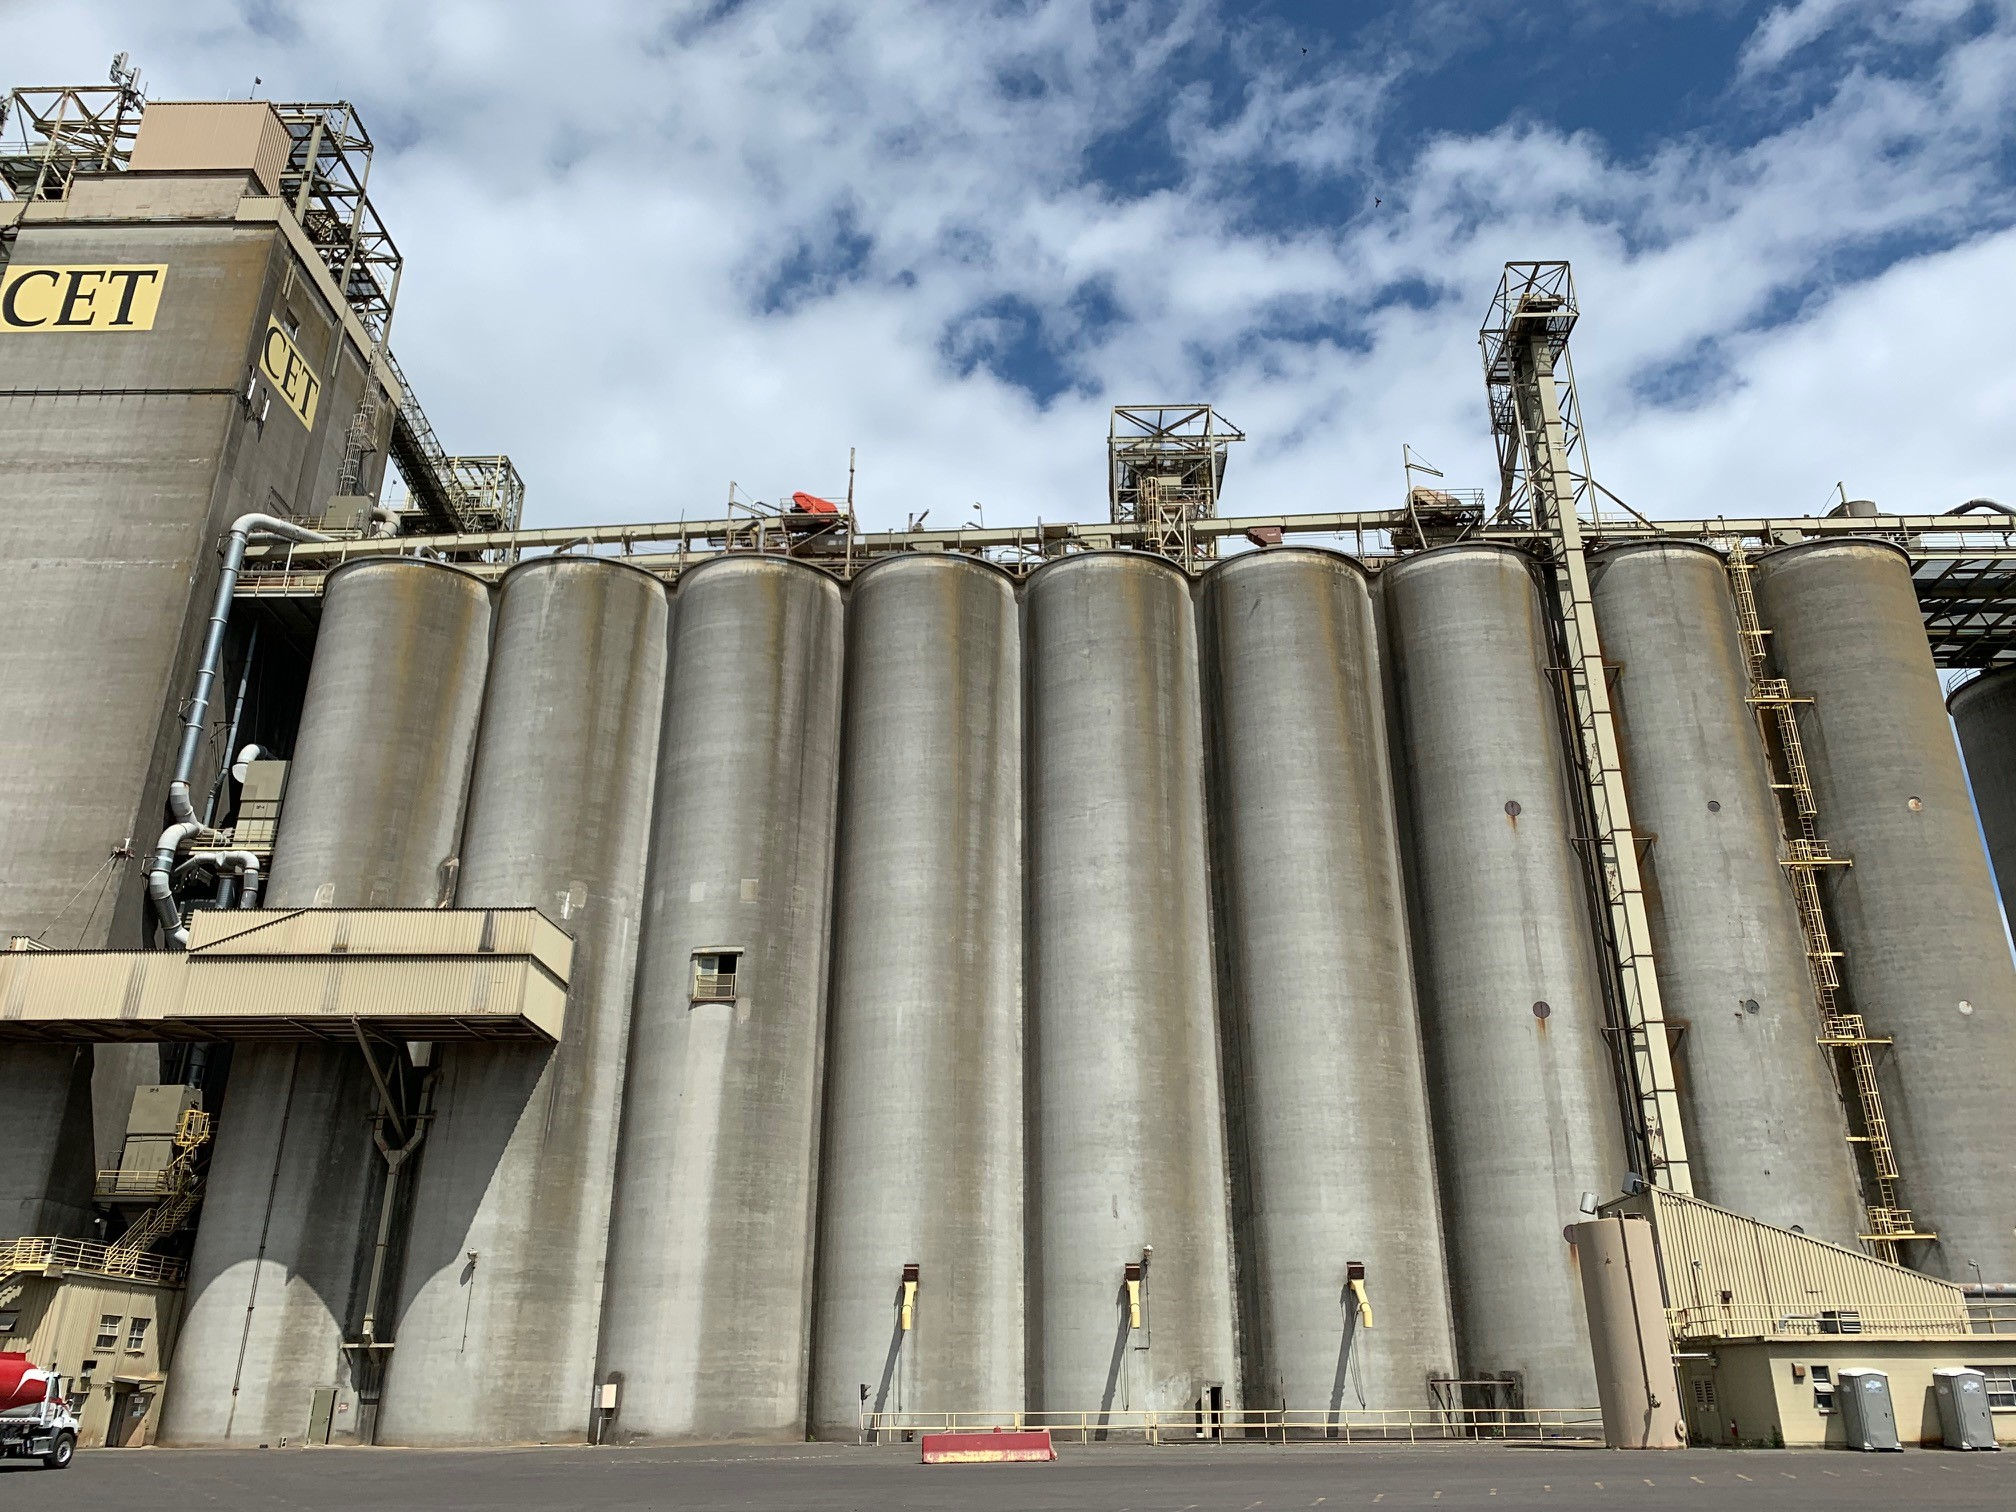 Large grain silos at a grain export facility in the Pacific Northwest.